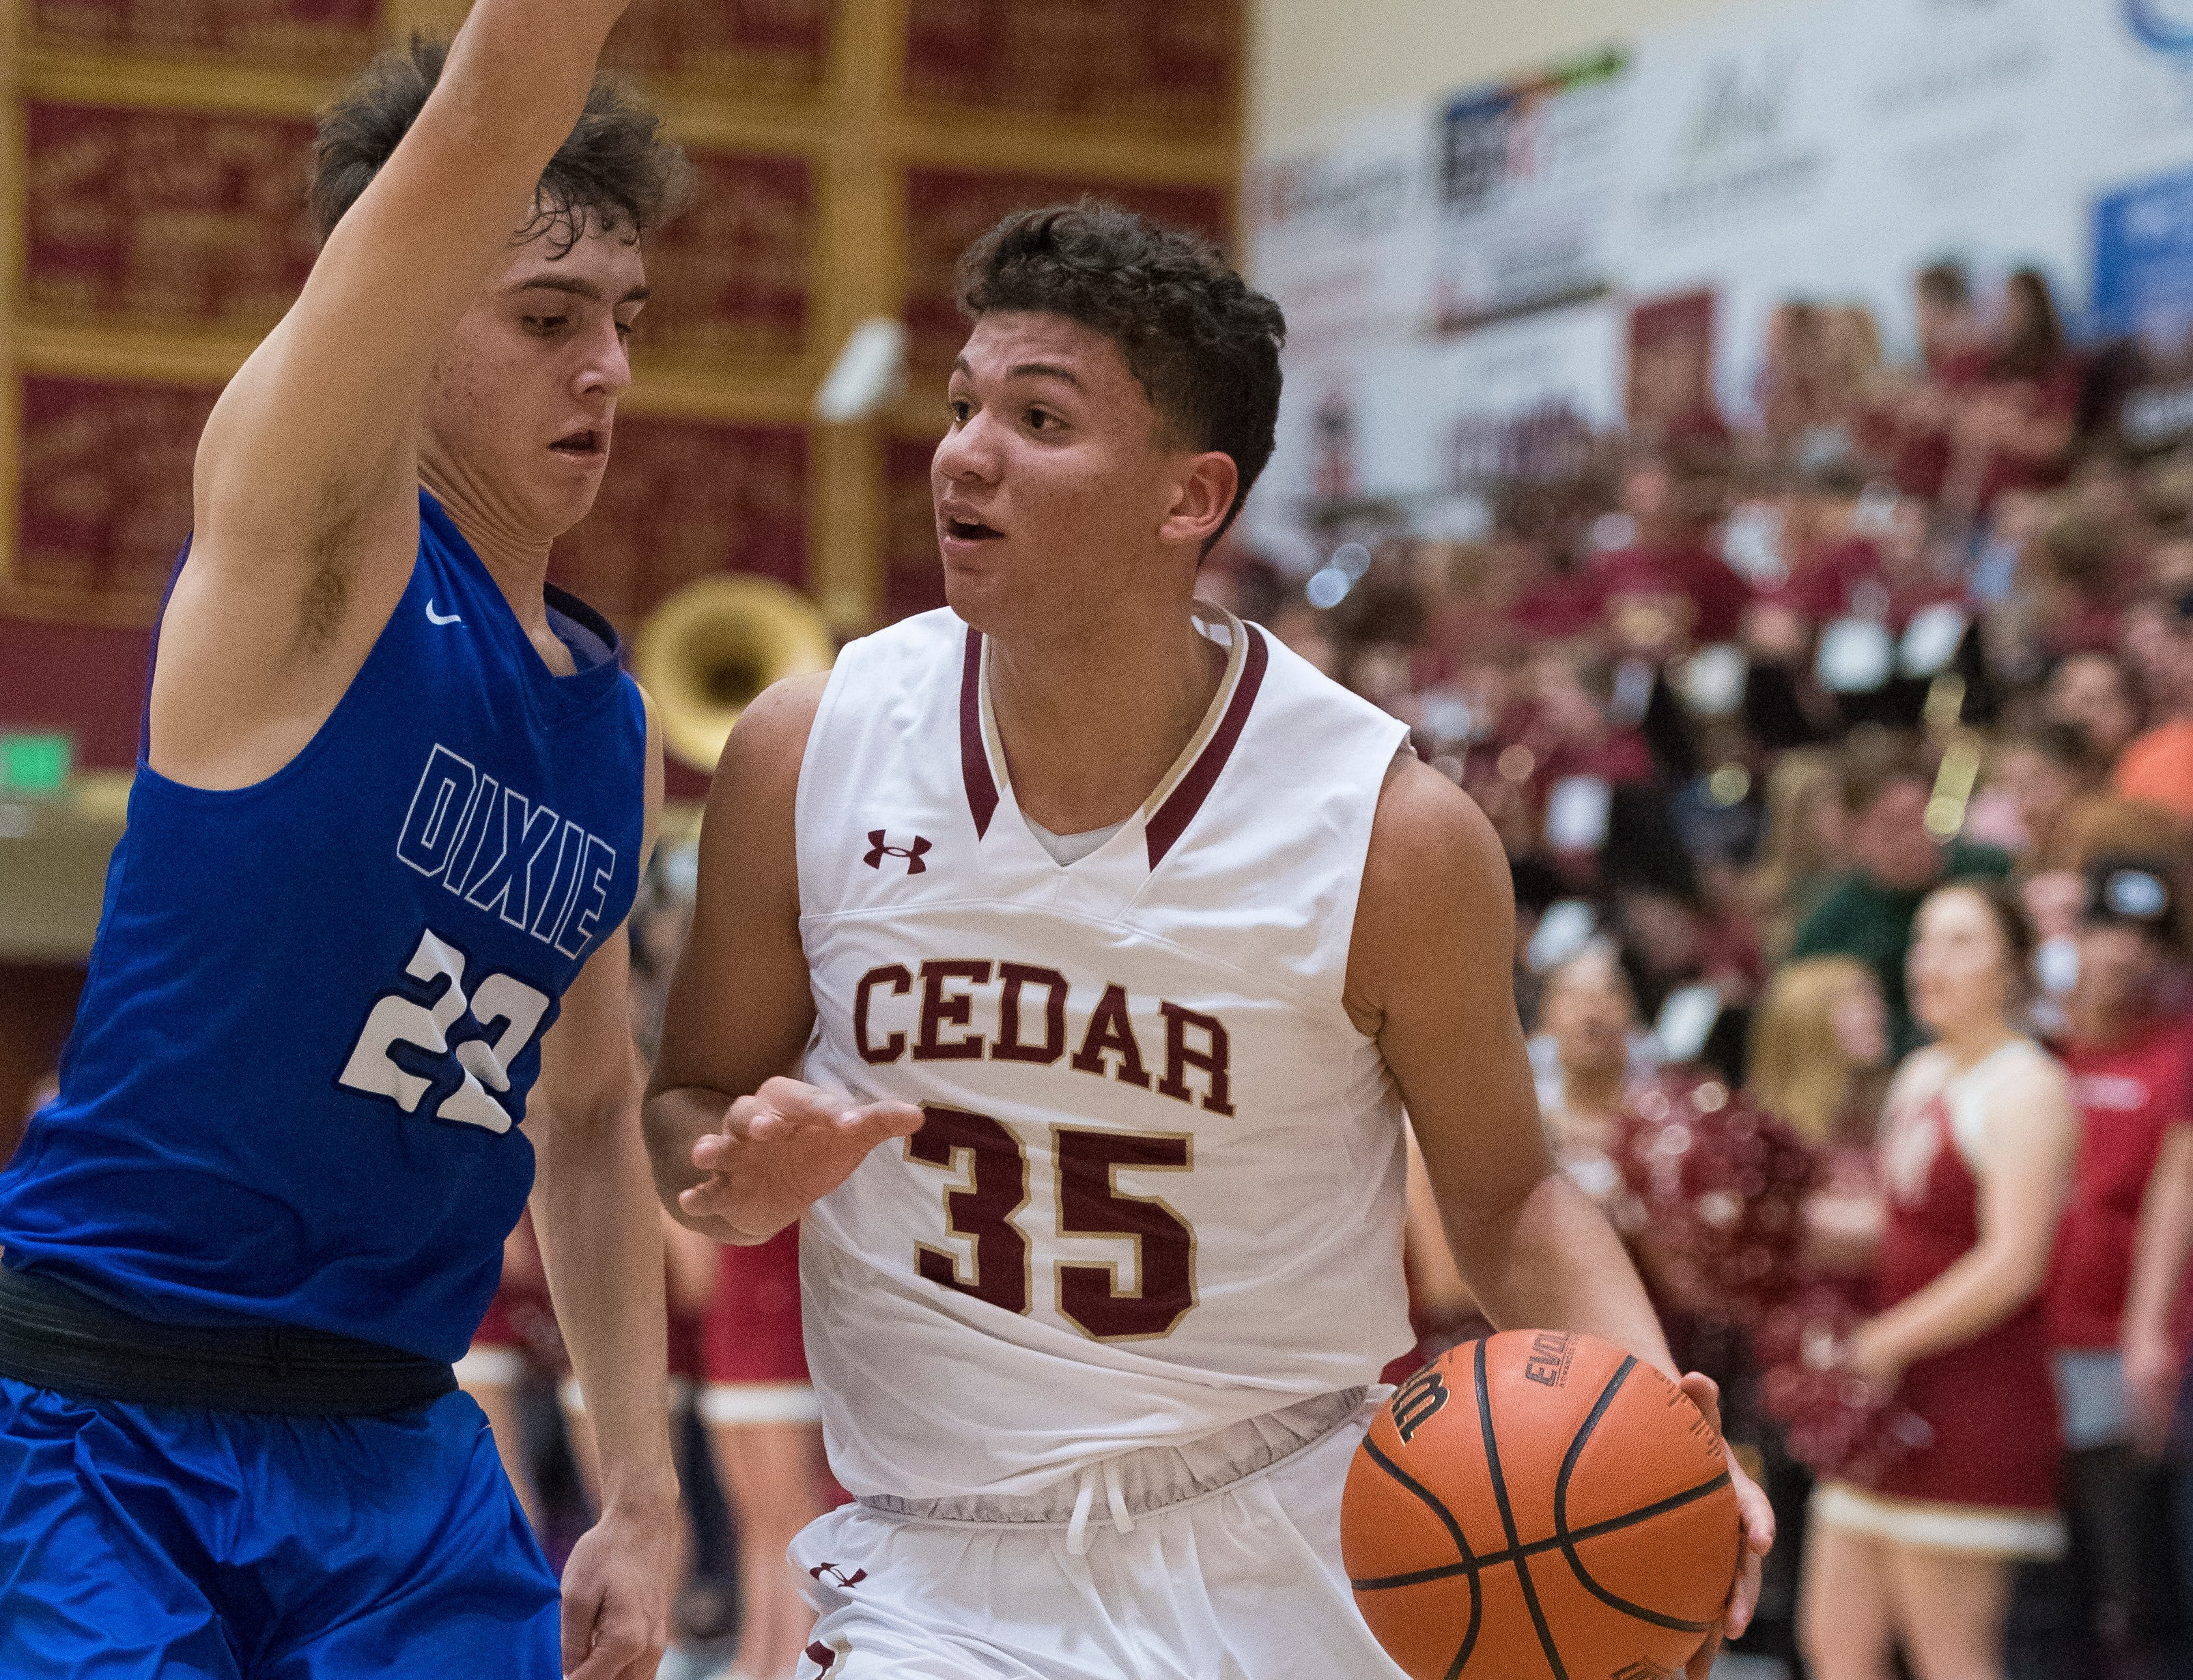 Cedar High School freshman Jorge Reyes (35) looks for passing options against Dixie at CHS Wednesday, December 19, 2018. Trading the lead all game, Dixie won, 49-45.